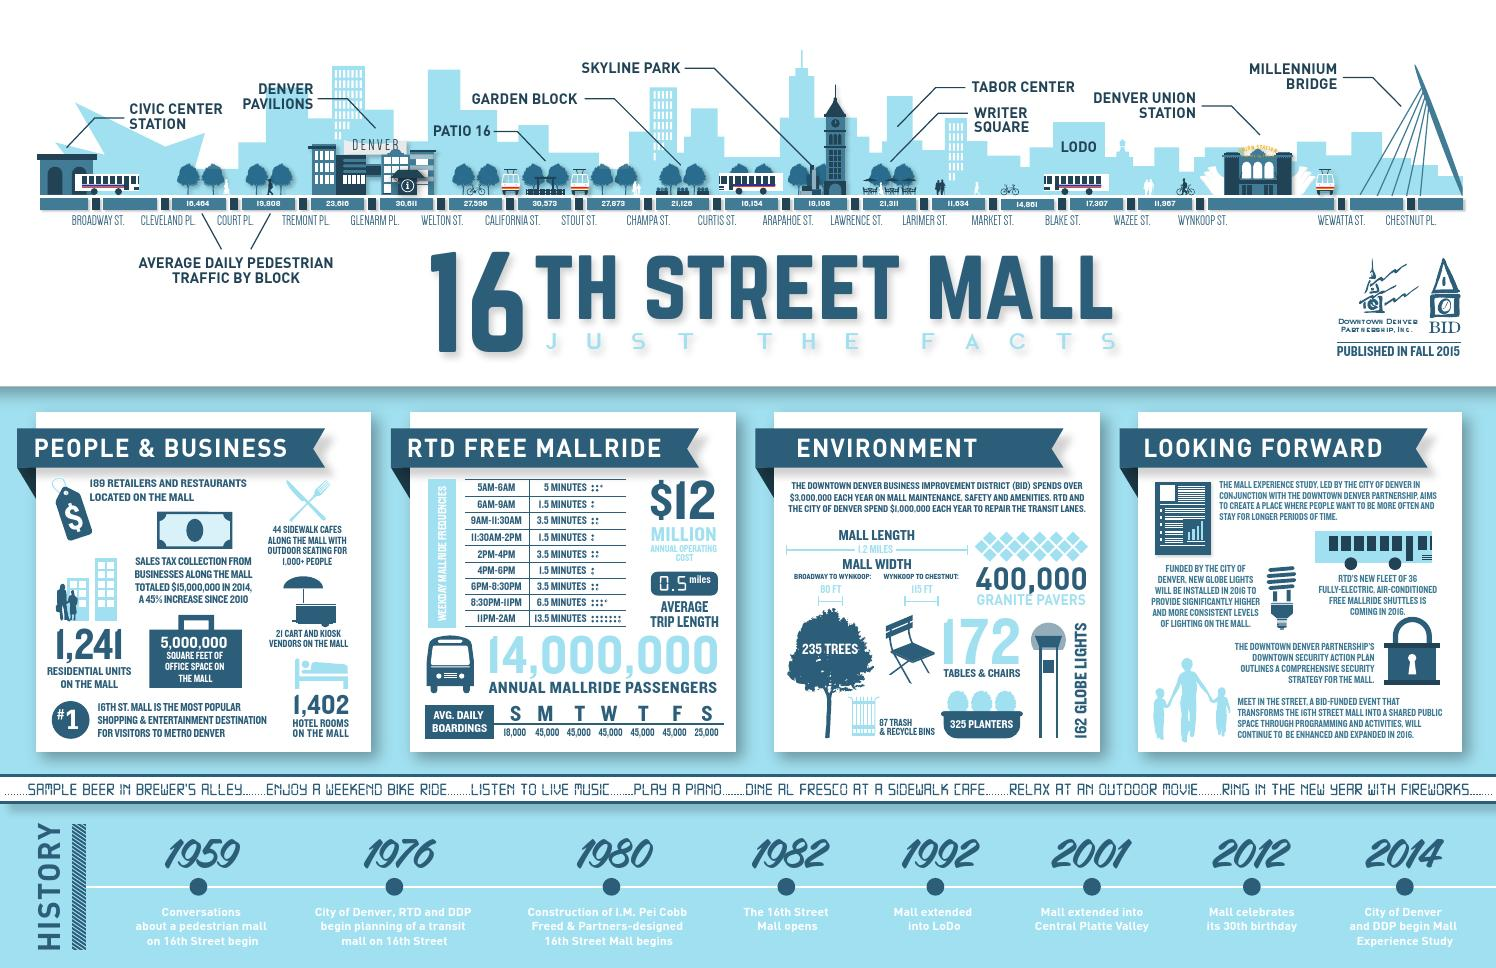 16th Street Mall - Just the Facts by DowntownDenver - issuu on little rock zoo map, newport on the levee map, 16th street mall colorado, park meadows map, 16 street mall map, san antonio zoo map, 16th street mall plan, 16th street mall directory, newbury street map, gold line map, 16th street mall restaurants, 16th street denver co, fulton street map, 16th mall denver, 16th street mall pianos, 16th street mall food, ermou street map, john f. kennedy international airport map, 16th street mall shuttle, south street seaport map,